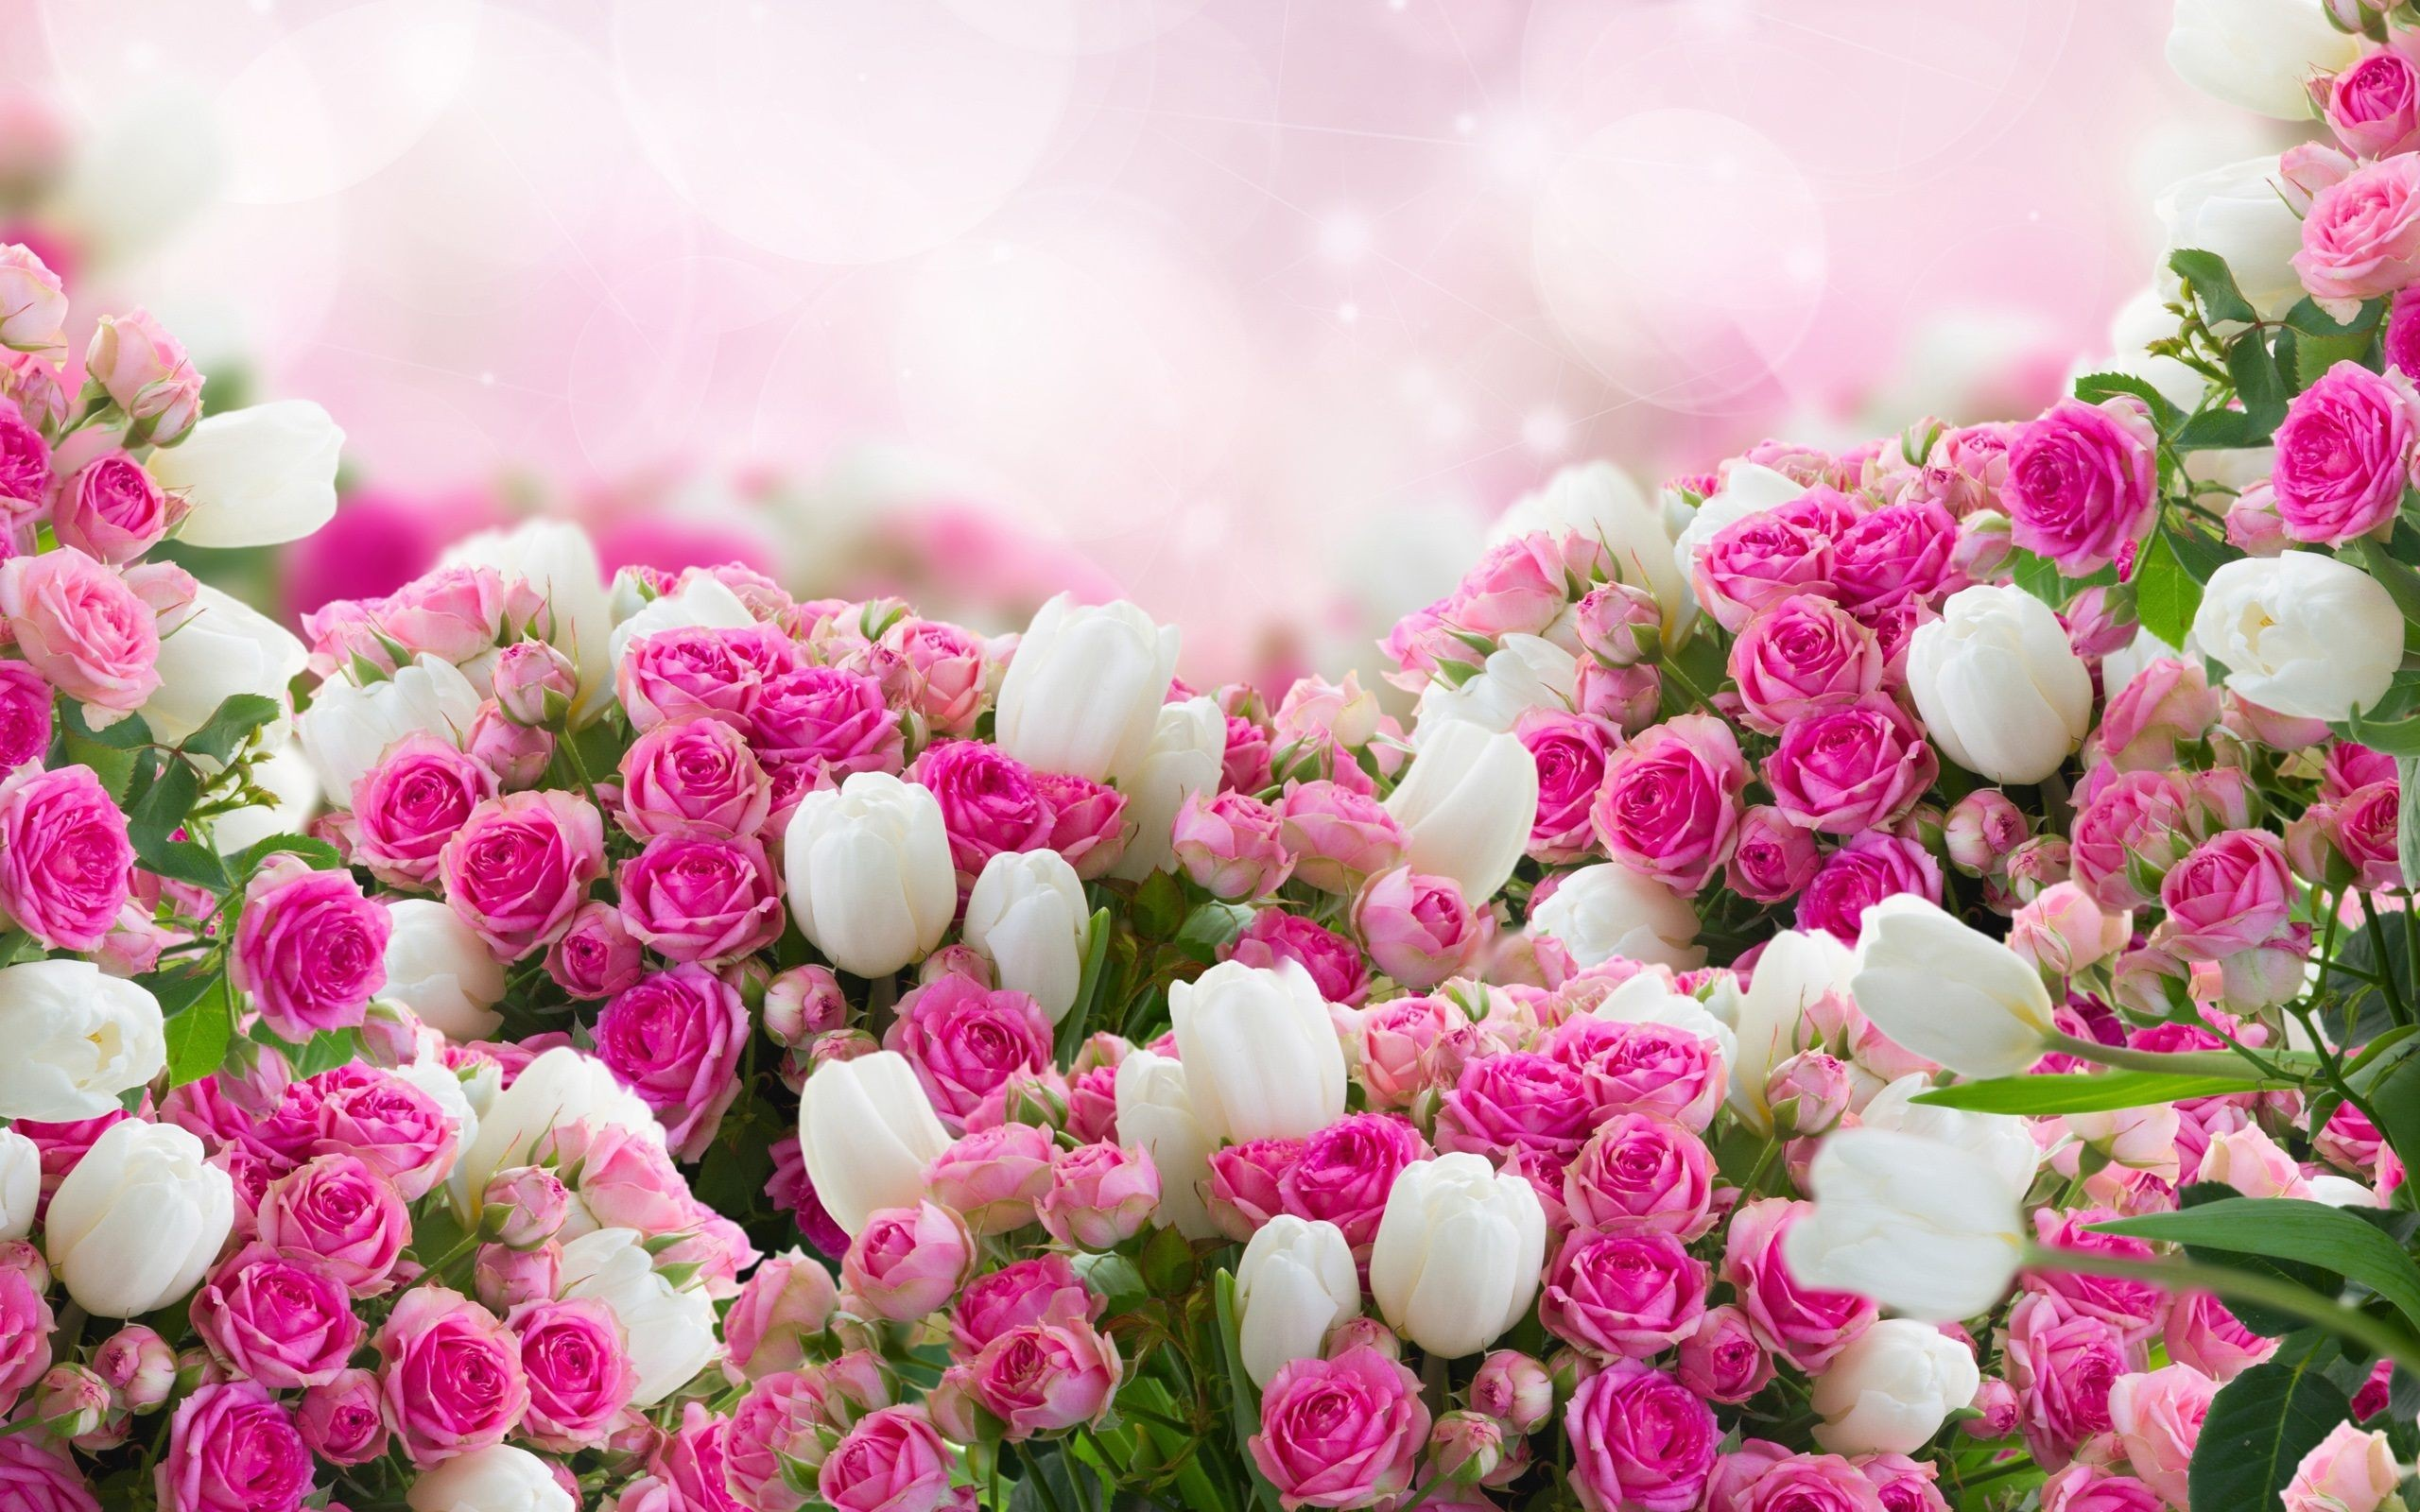 75 pictures of most beautiful flowers in 4k wiki wallpapers 2018 1920x1200 best beautiful flowers wallpapers in hd wallpaper top most pretty for smartpne flowers wallpapers 75 izmirmasajfo